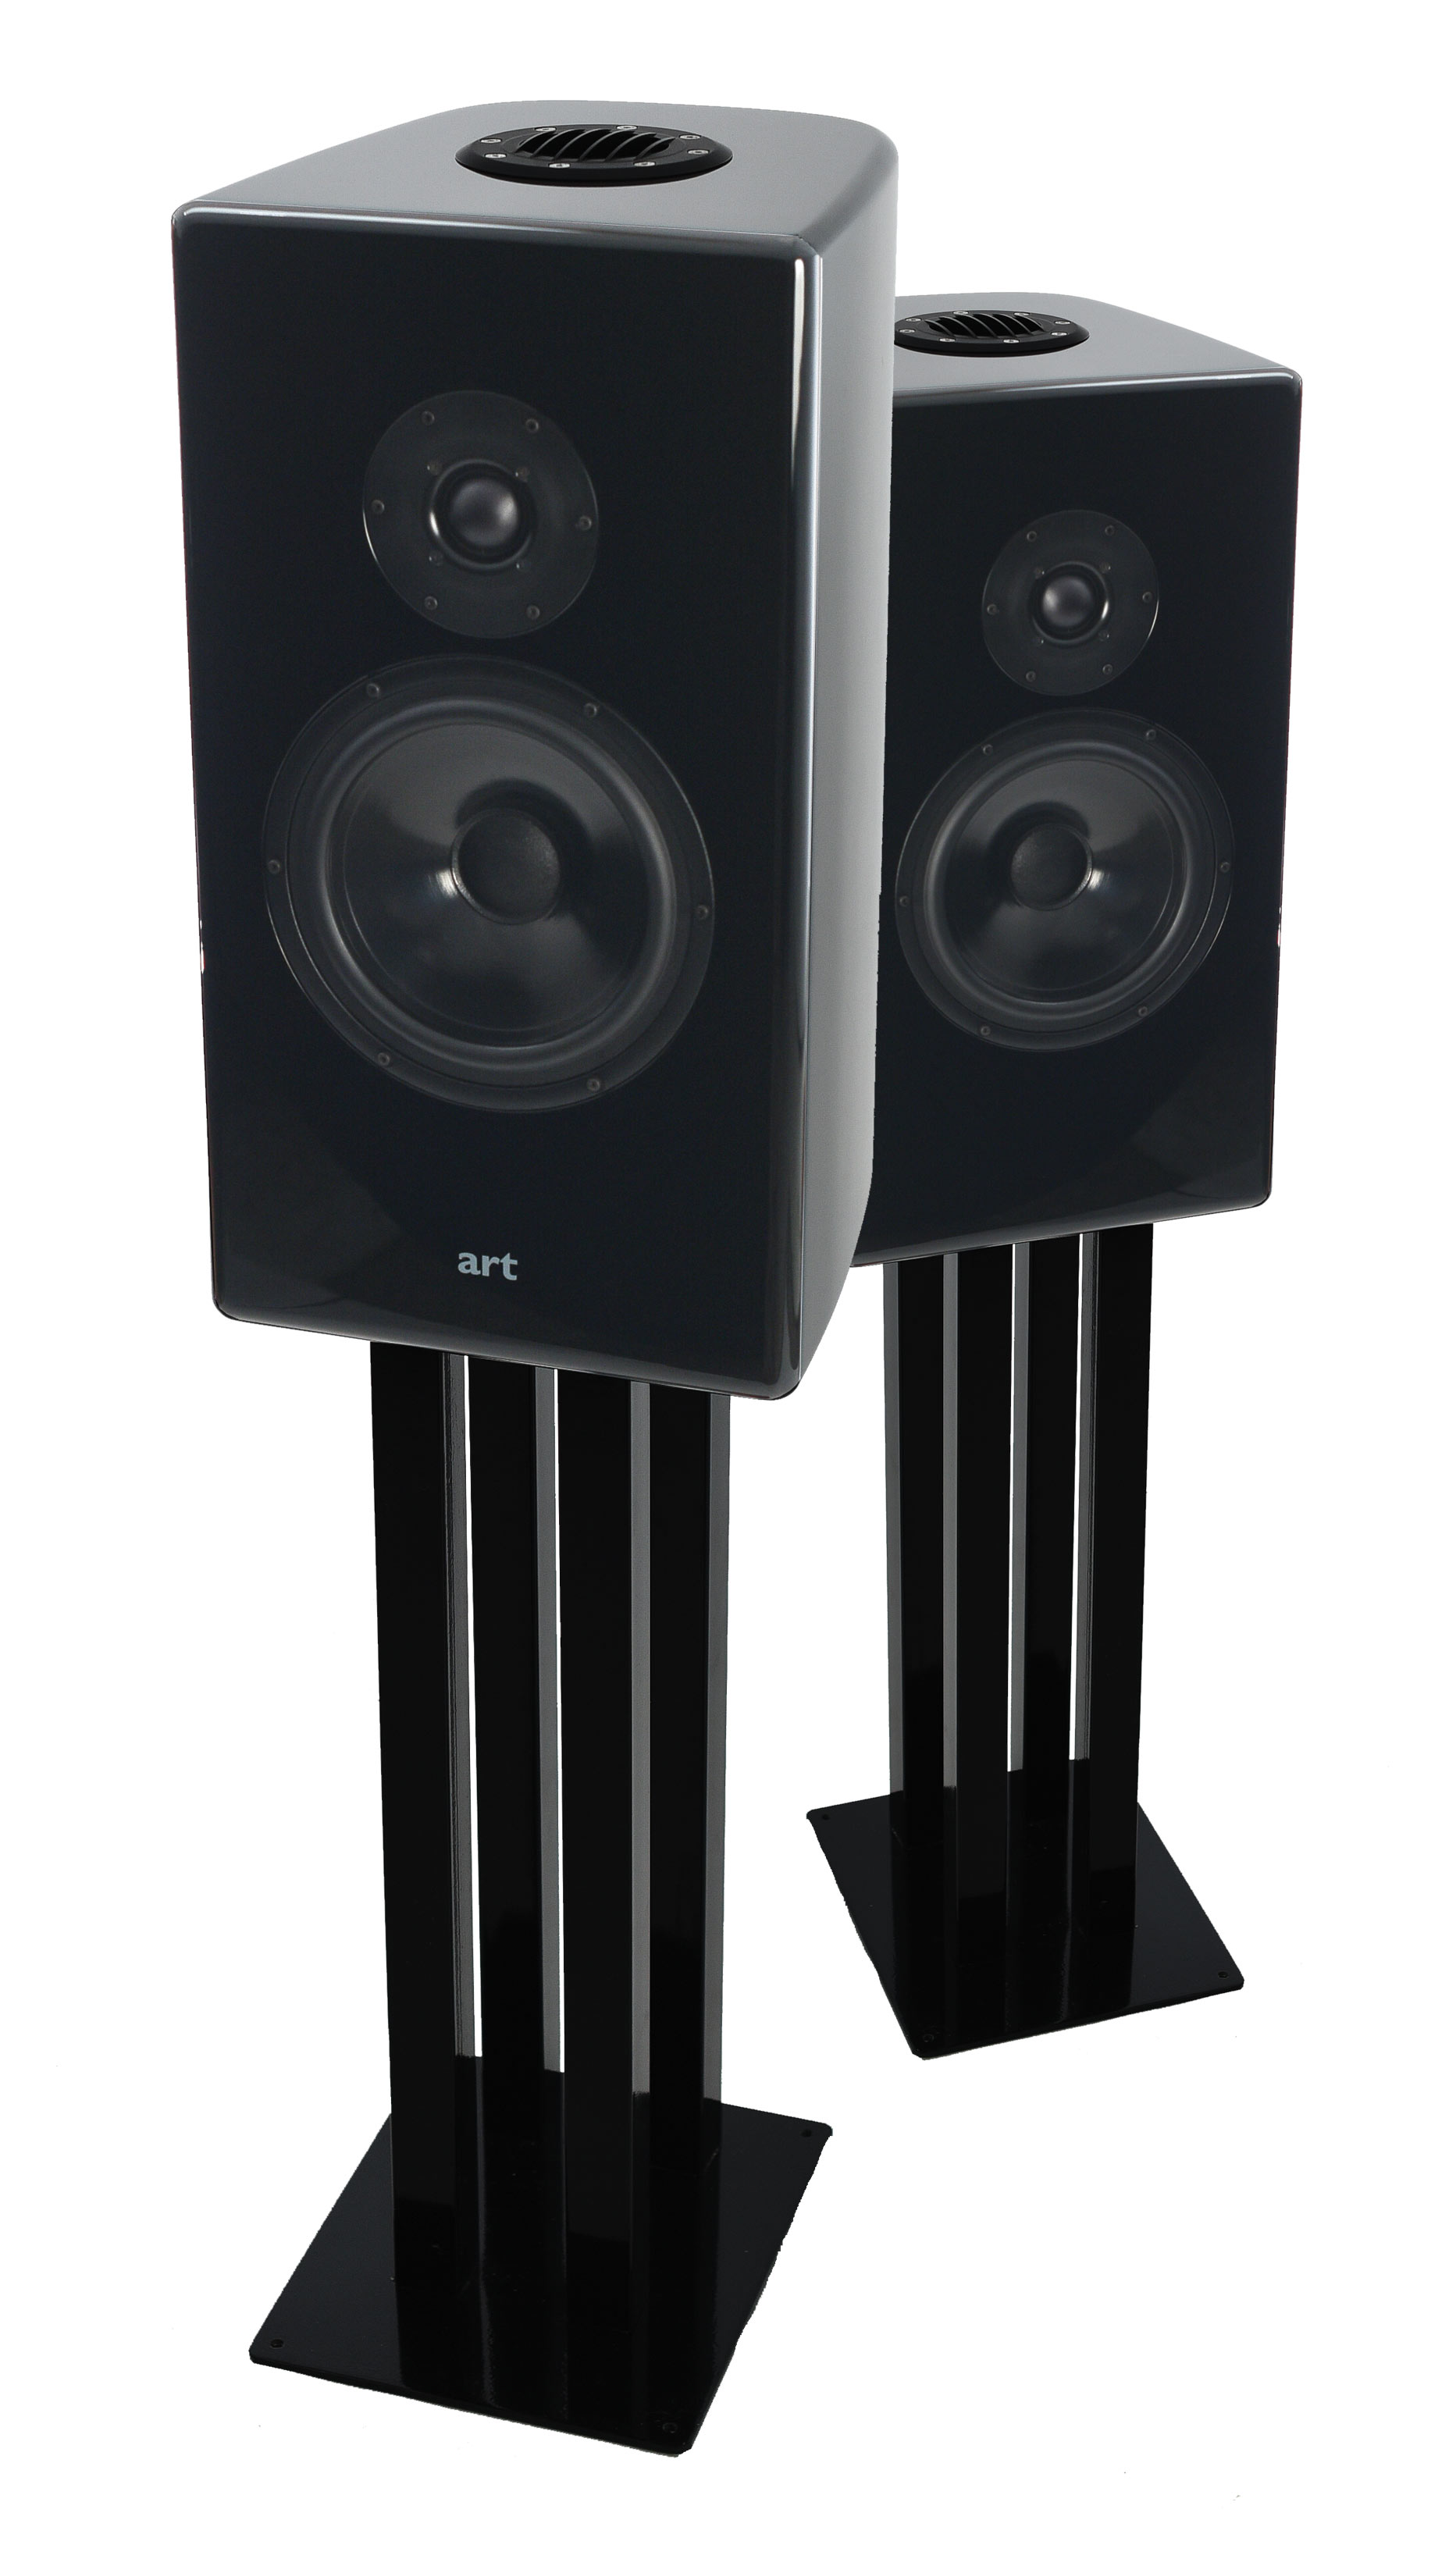 art-dram-monitor-speaker-pair.jpg